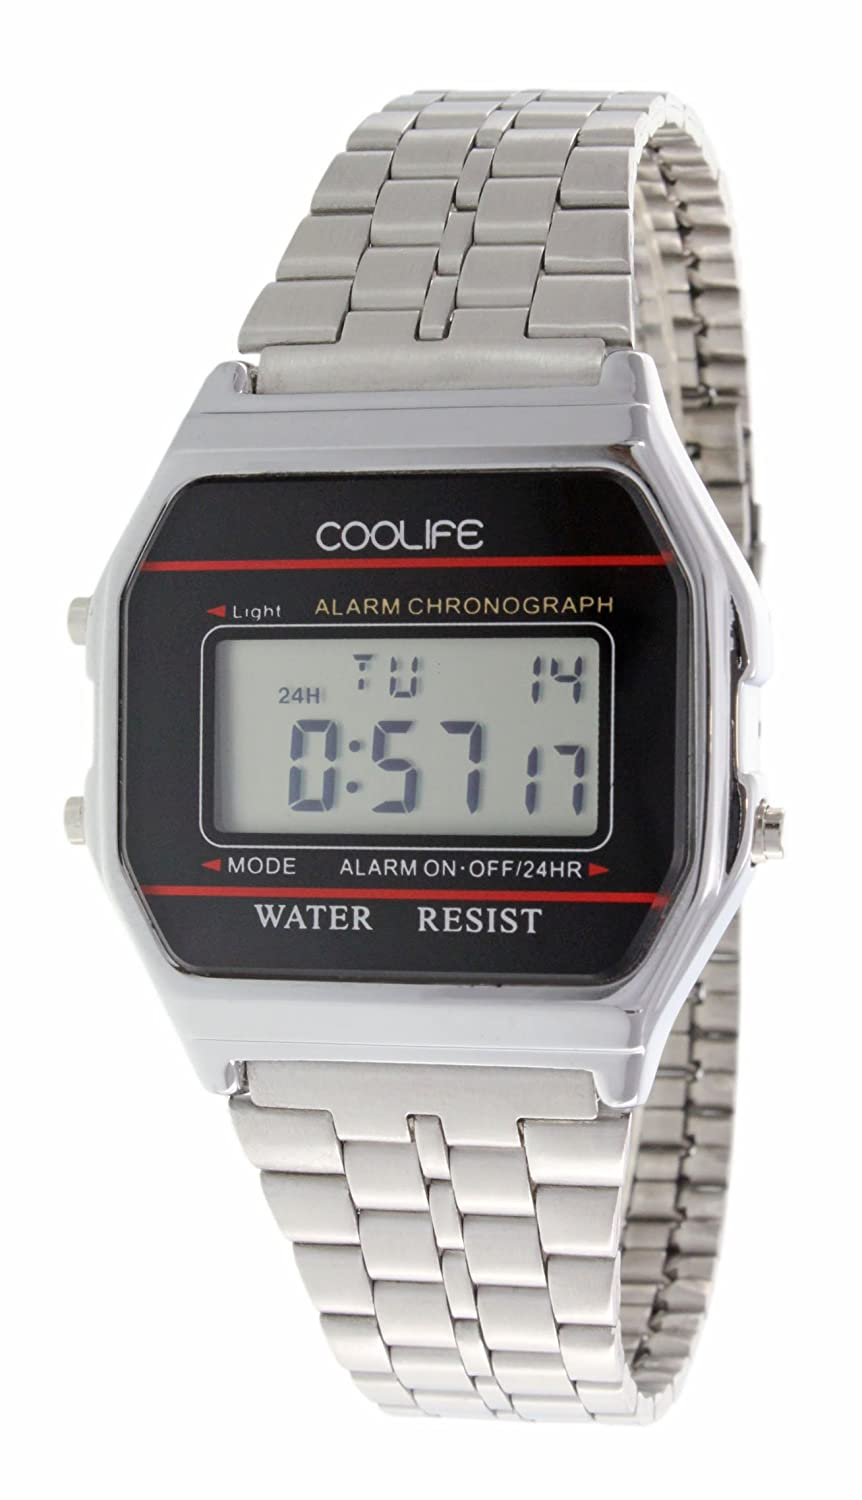 Coolife Retro Style Watches - Reloj de Cuarzo Unisex, con Correa de Metal